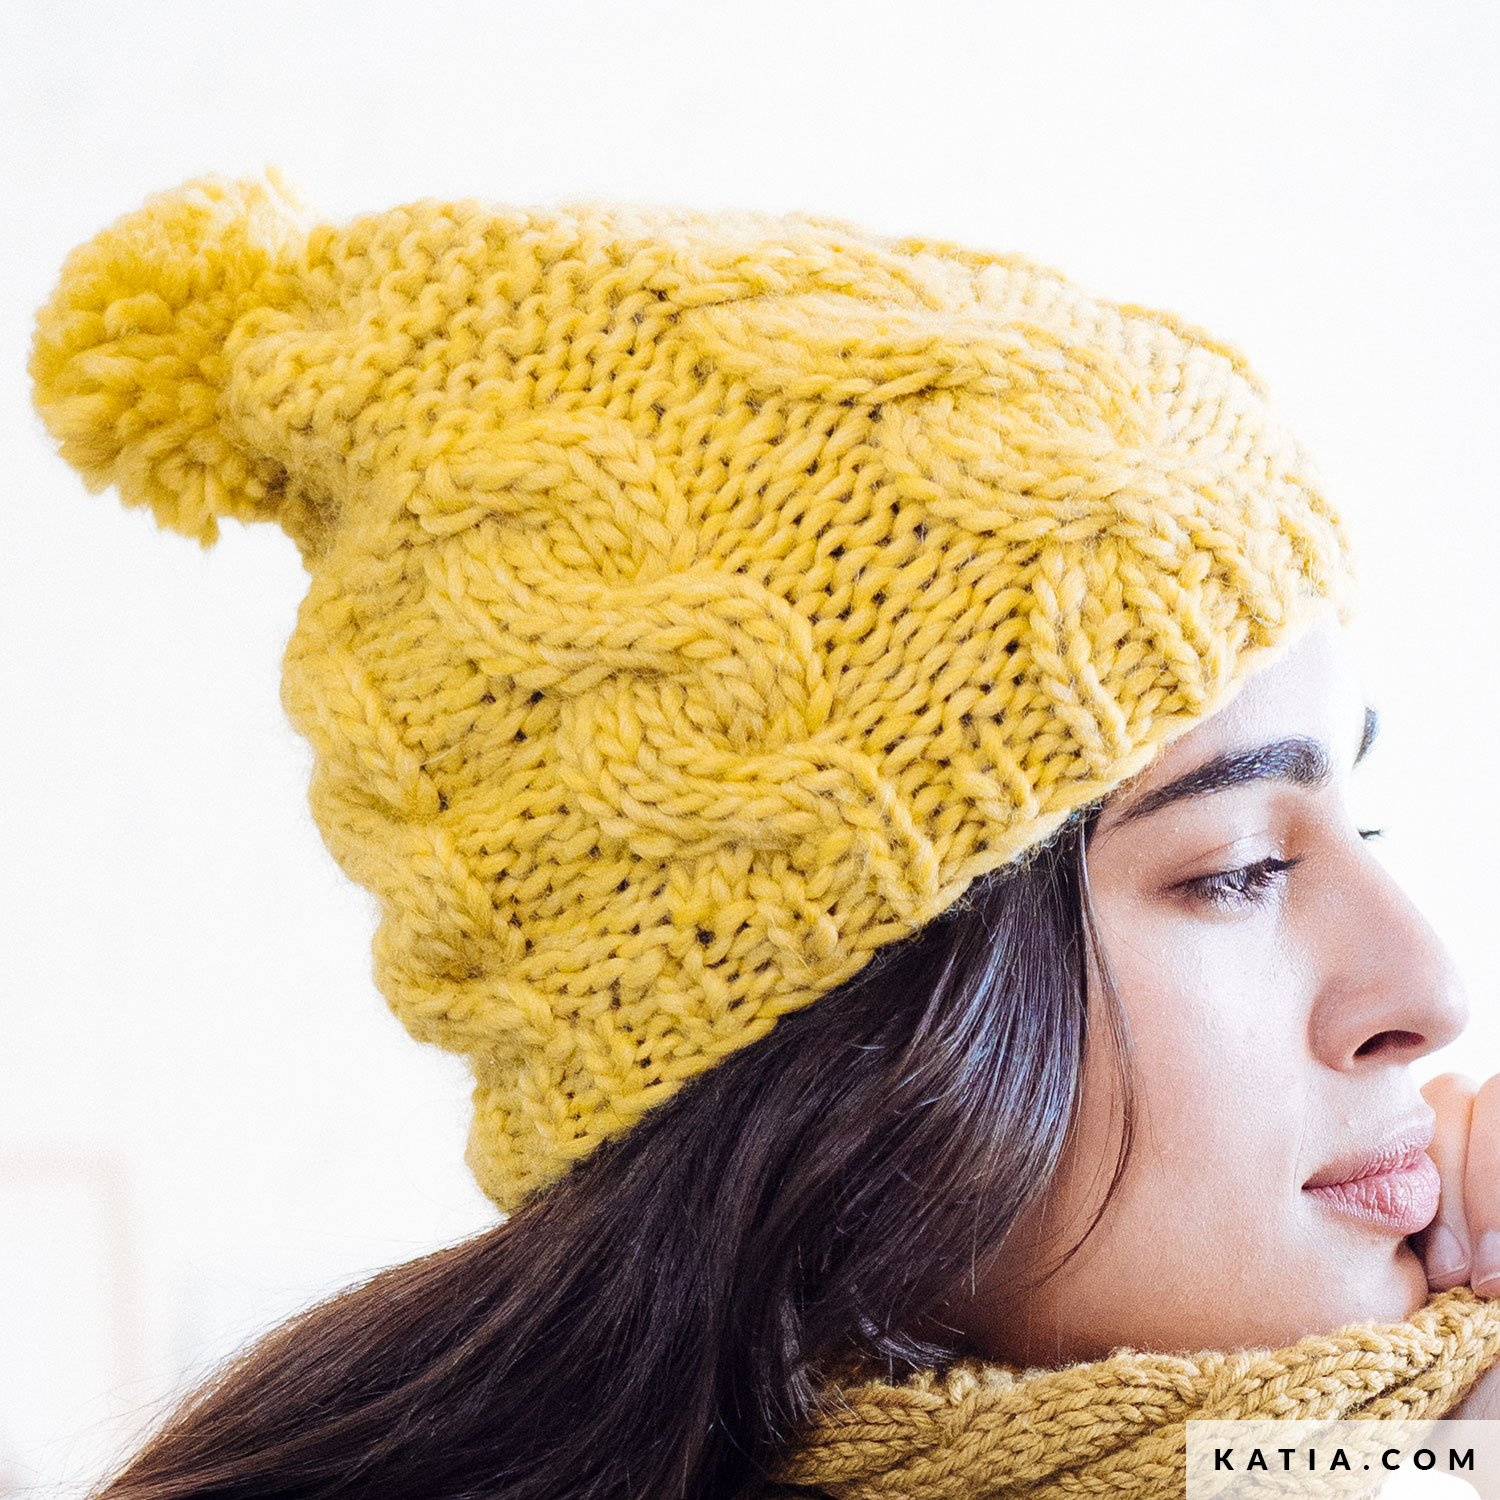 e27a0c7198b33 pattern knit crochet woman cap autumn winter katia 6103 10 g